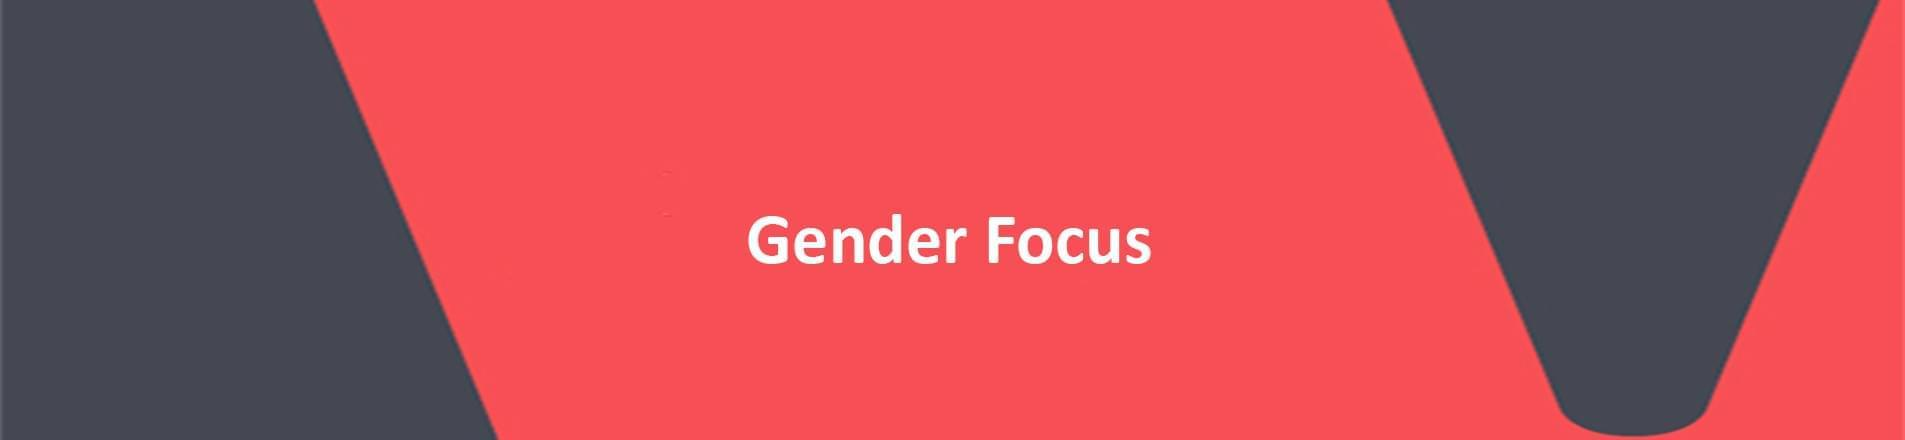 The words gender focus on a red VERCIDA branded background